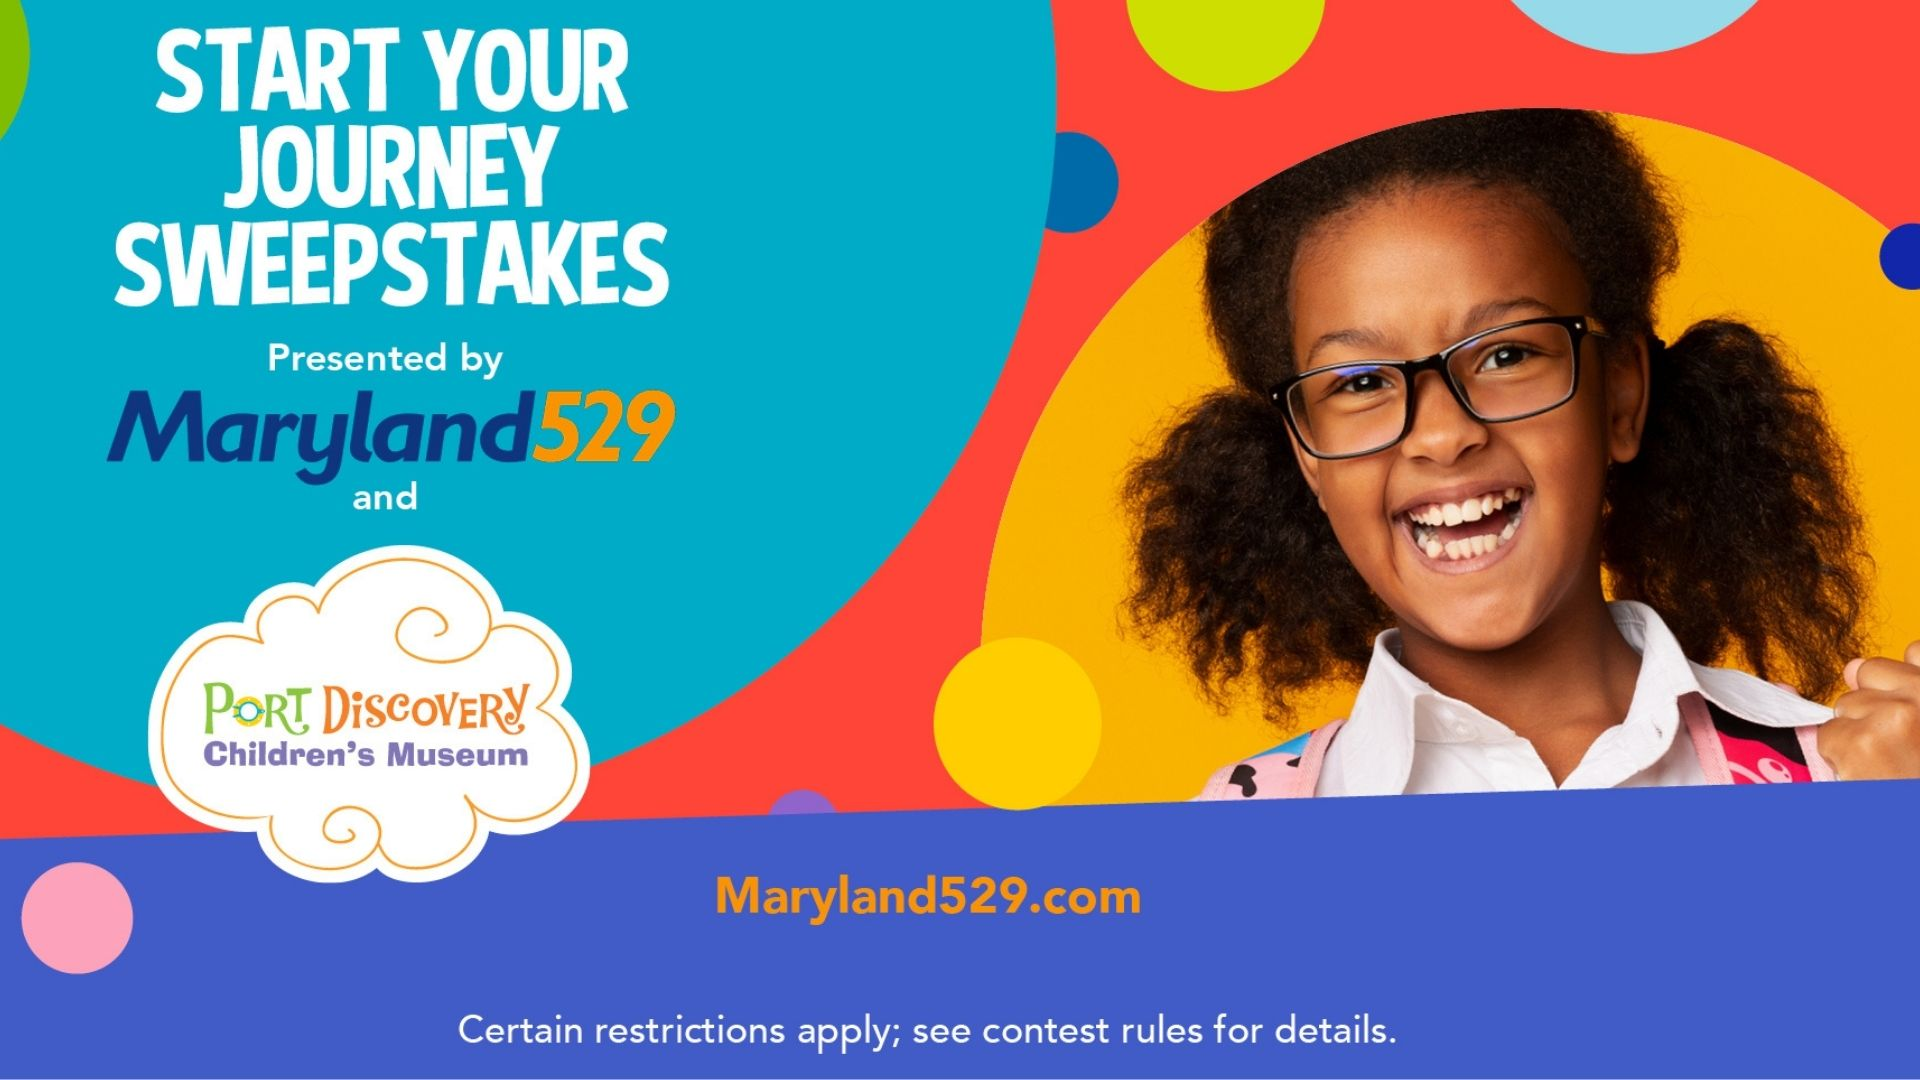 Start Your Journey Sweepstakes presented by Maryland 529 and Port Discovery Children's Museum